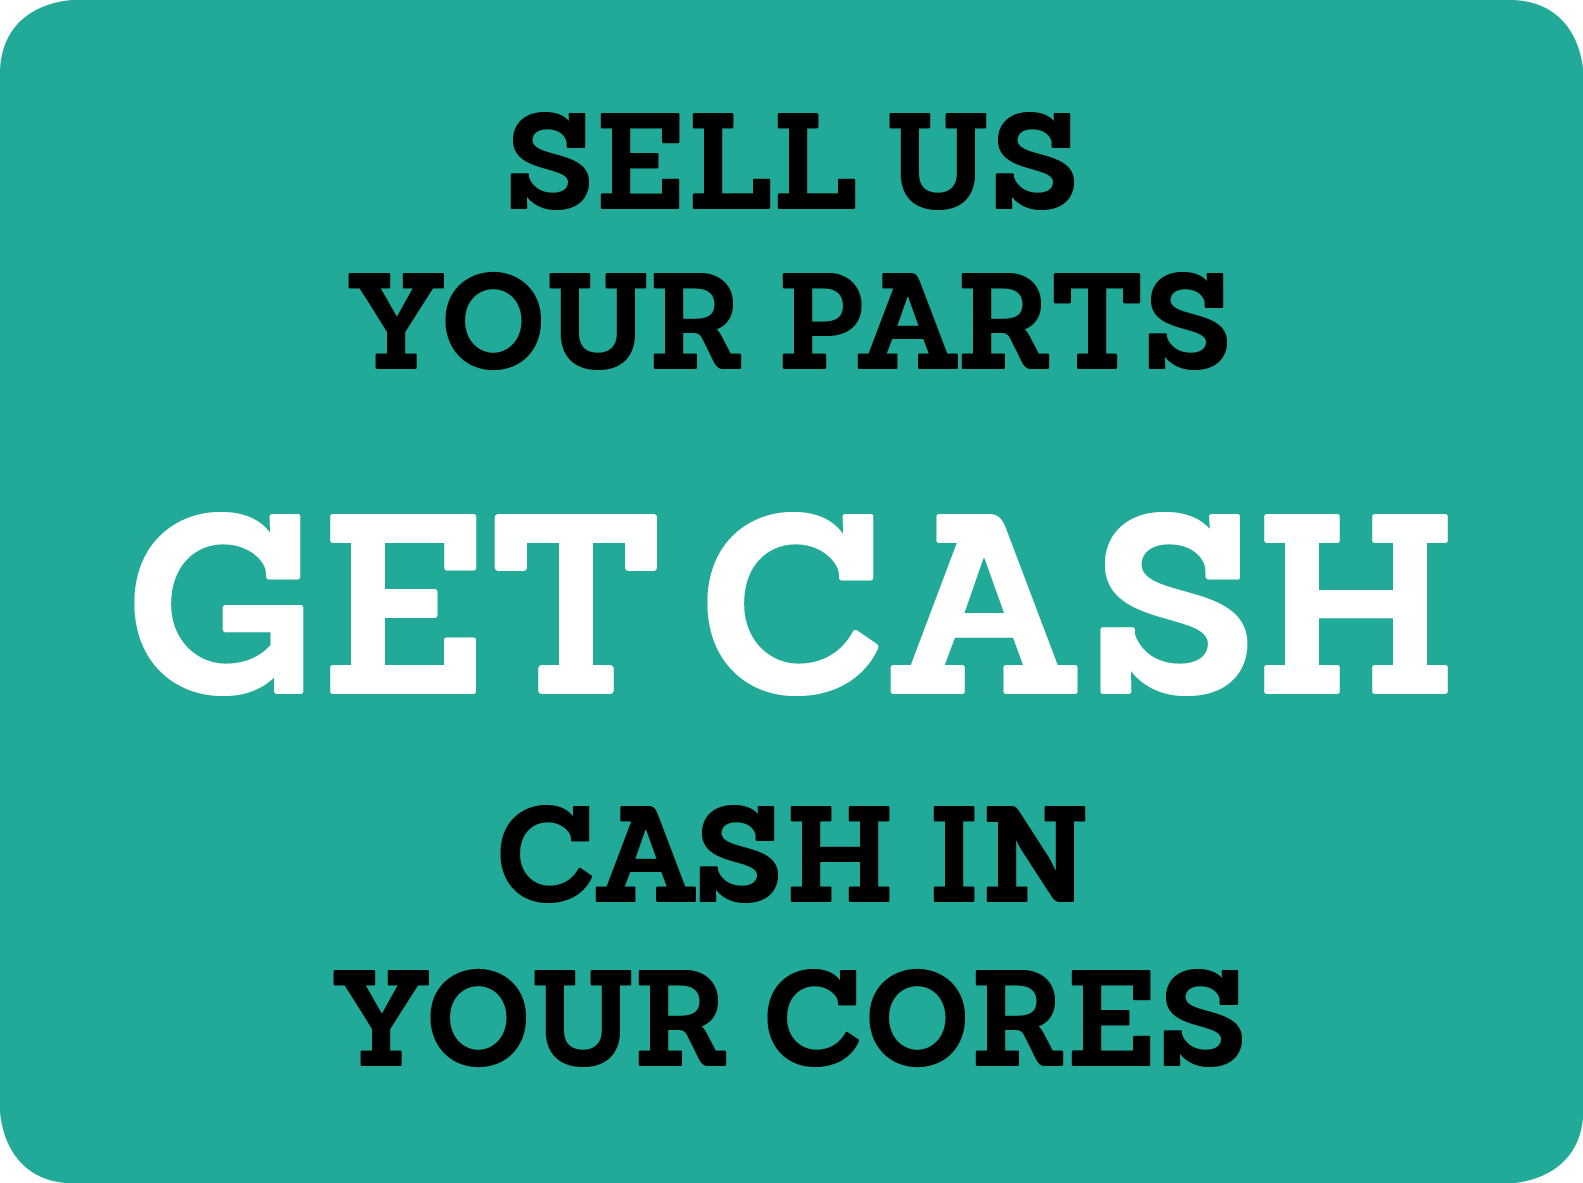 Sell Us Your Parts. Cash In Your Cores